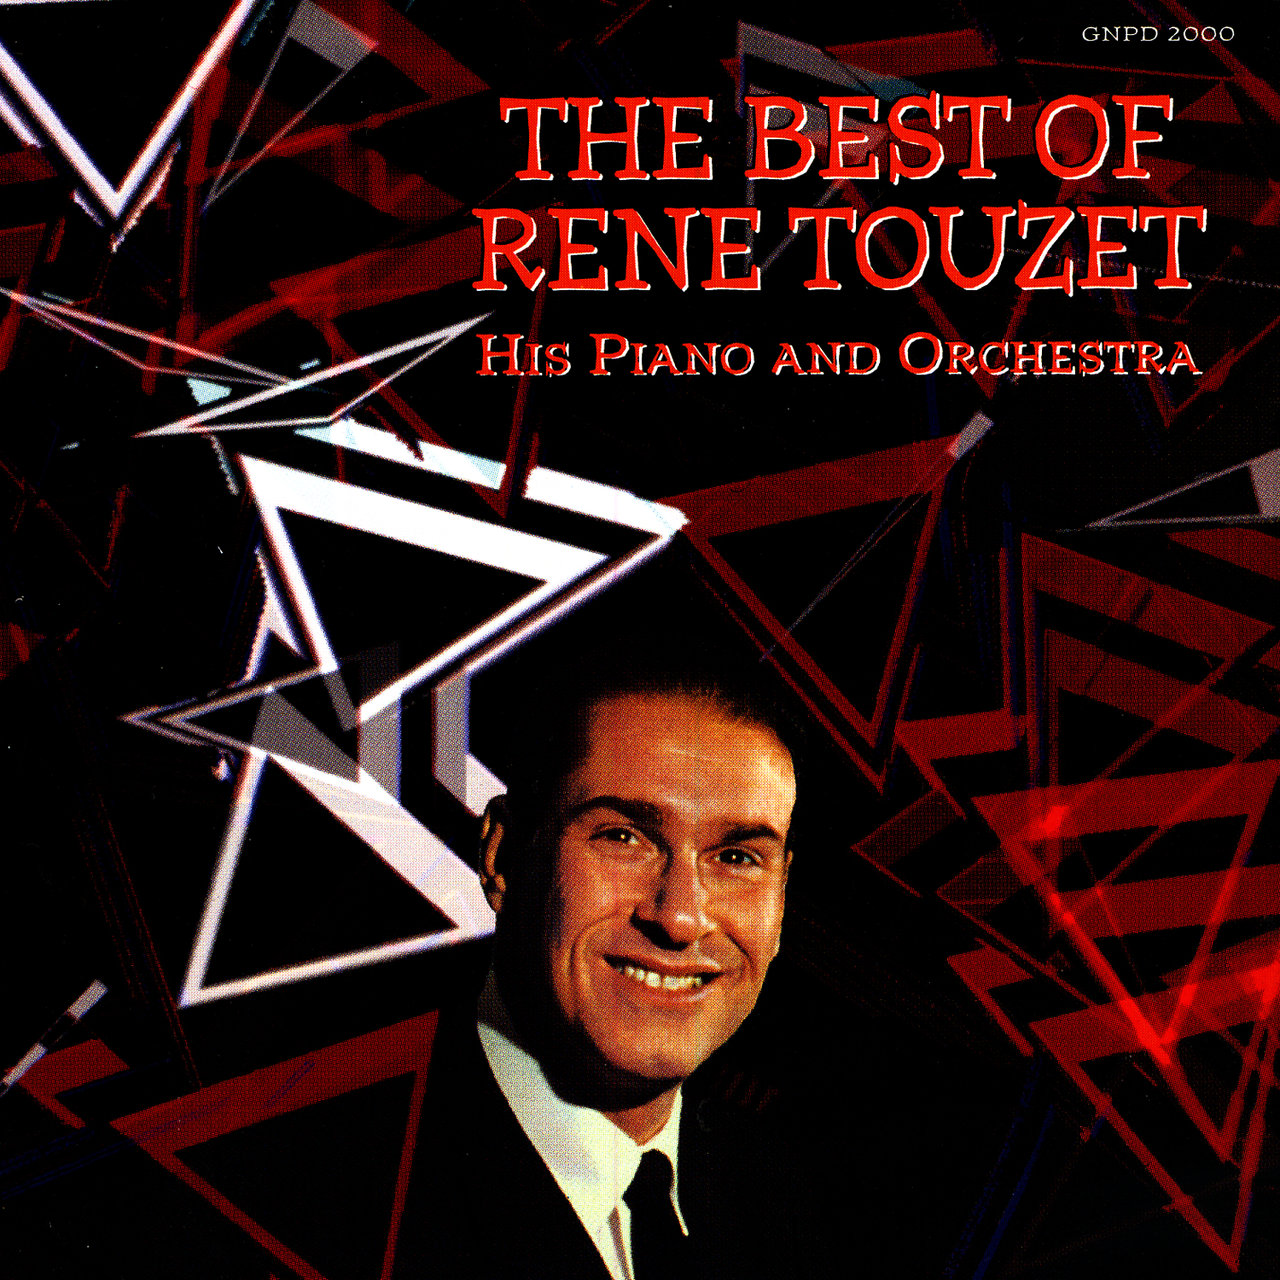 Rene Touzet Rene Touzet. The Best Of Rene Touzet rene magritte the revealing image